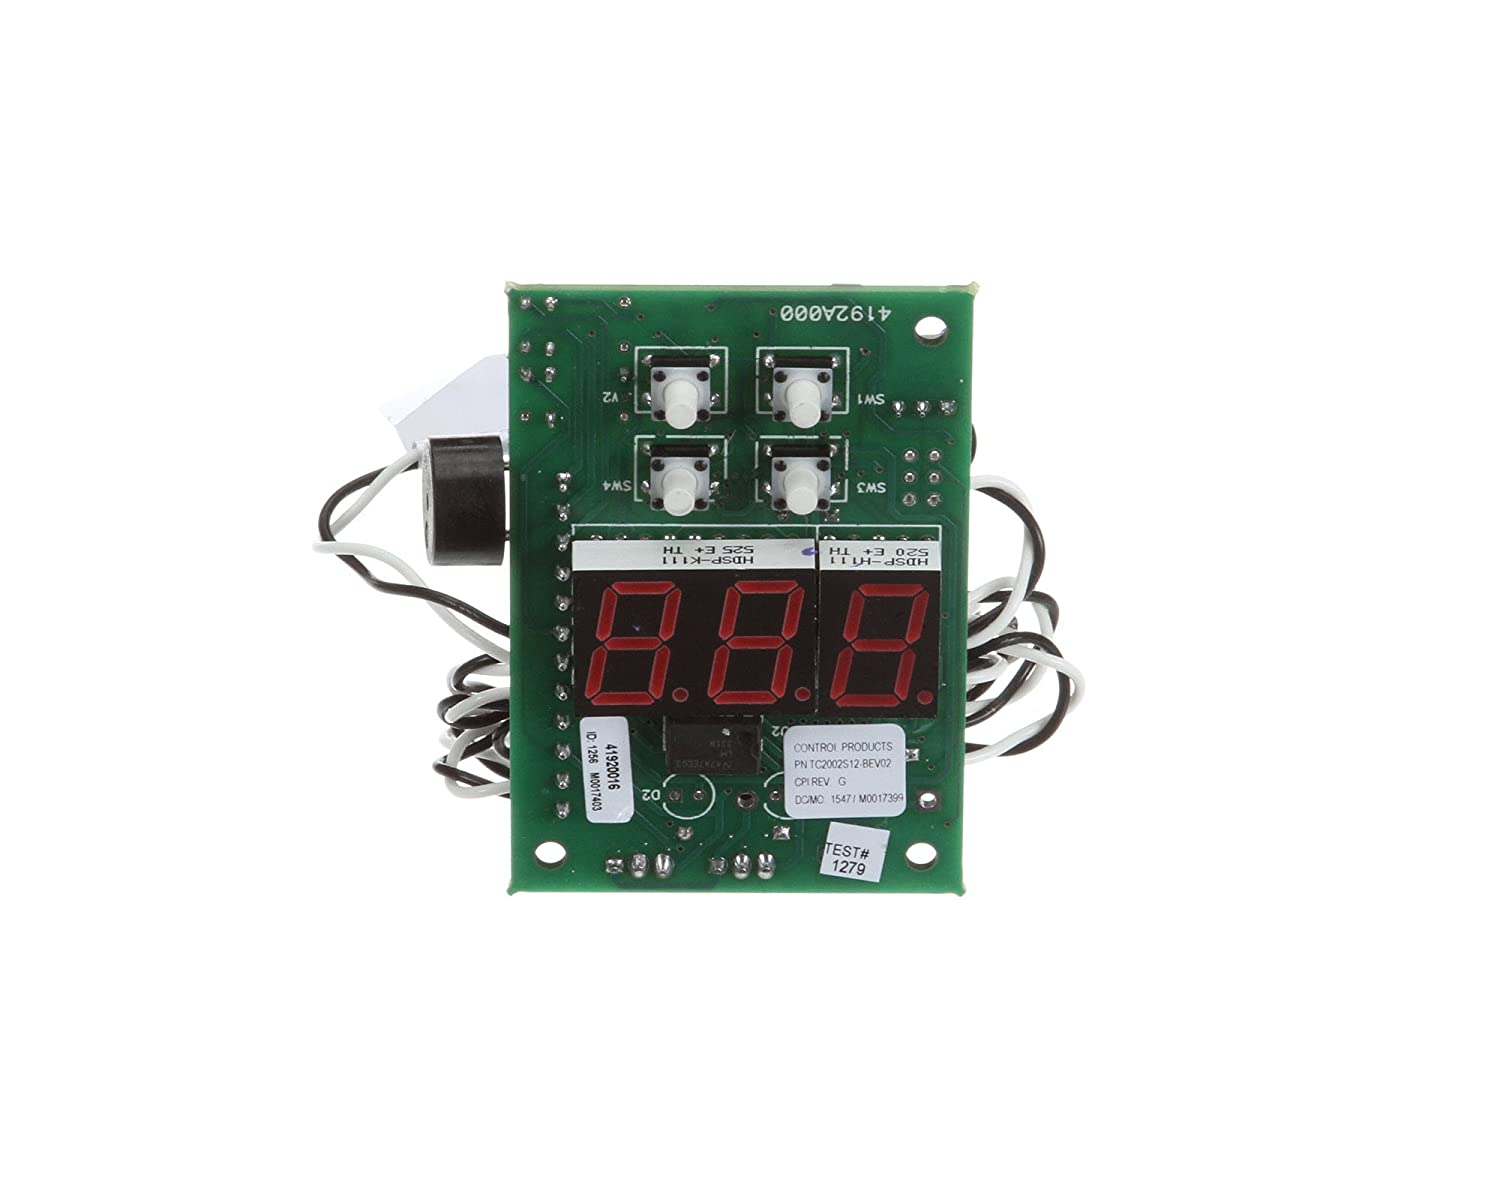 Image of Bevles 784662 Temperature Controller, Set 0-3 Commercial Cooking Equipment